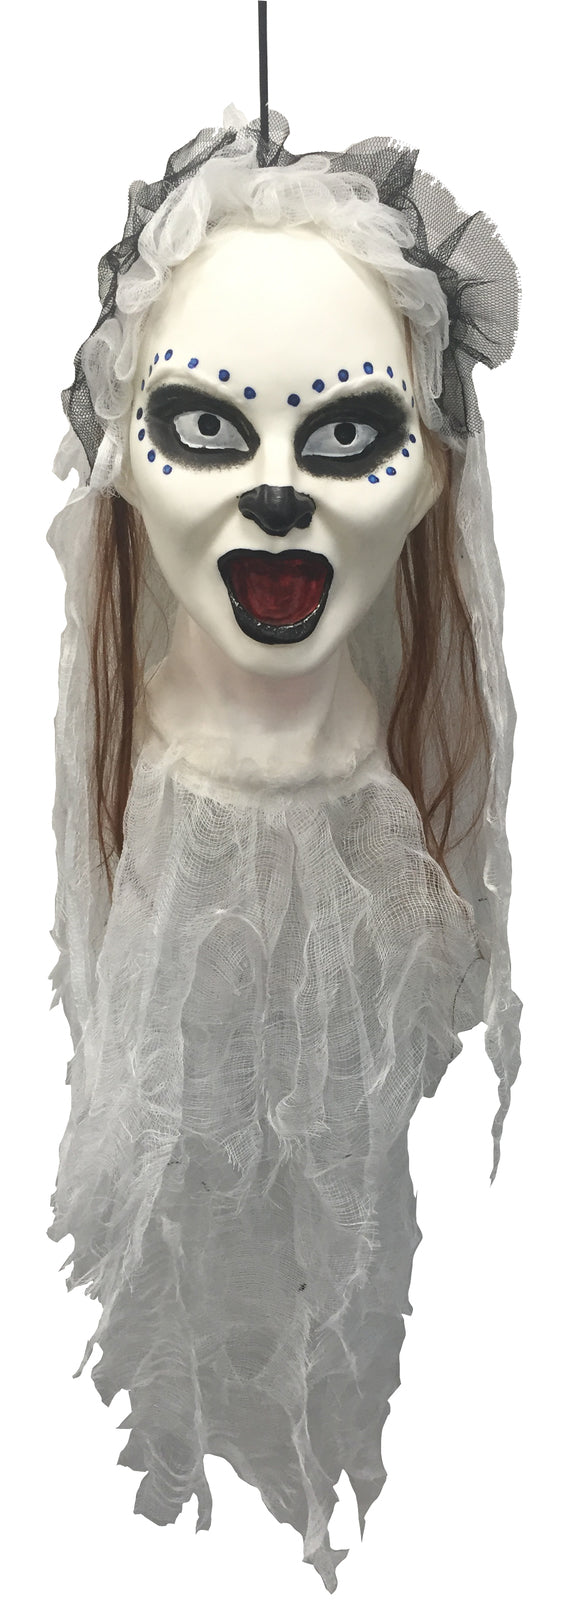 Hanging Dead Bride with Led Lights - Buy Online Only